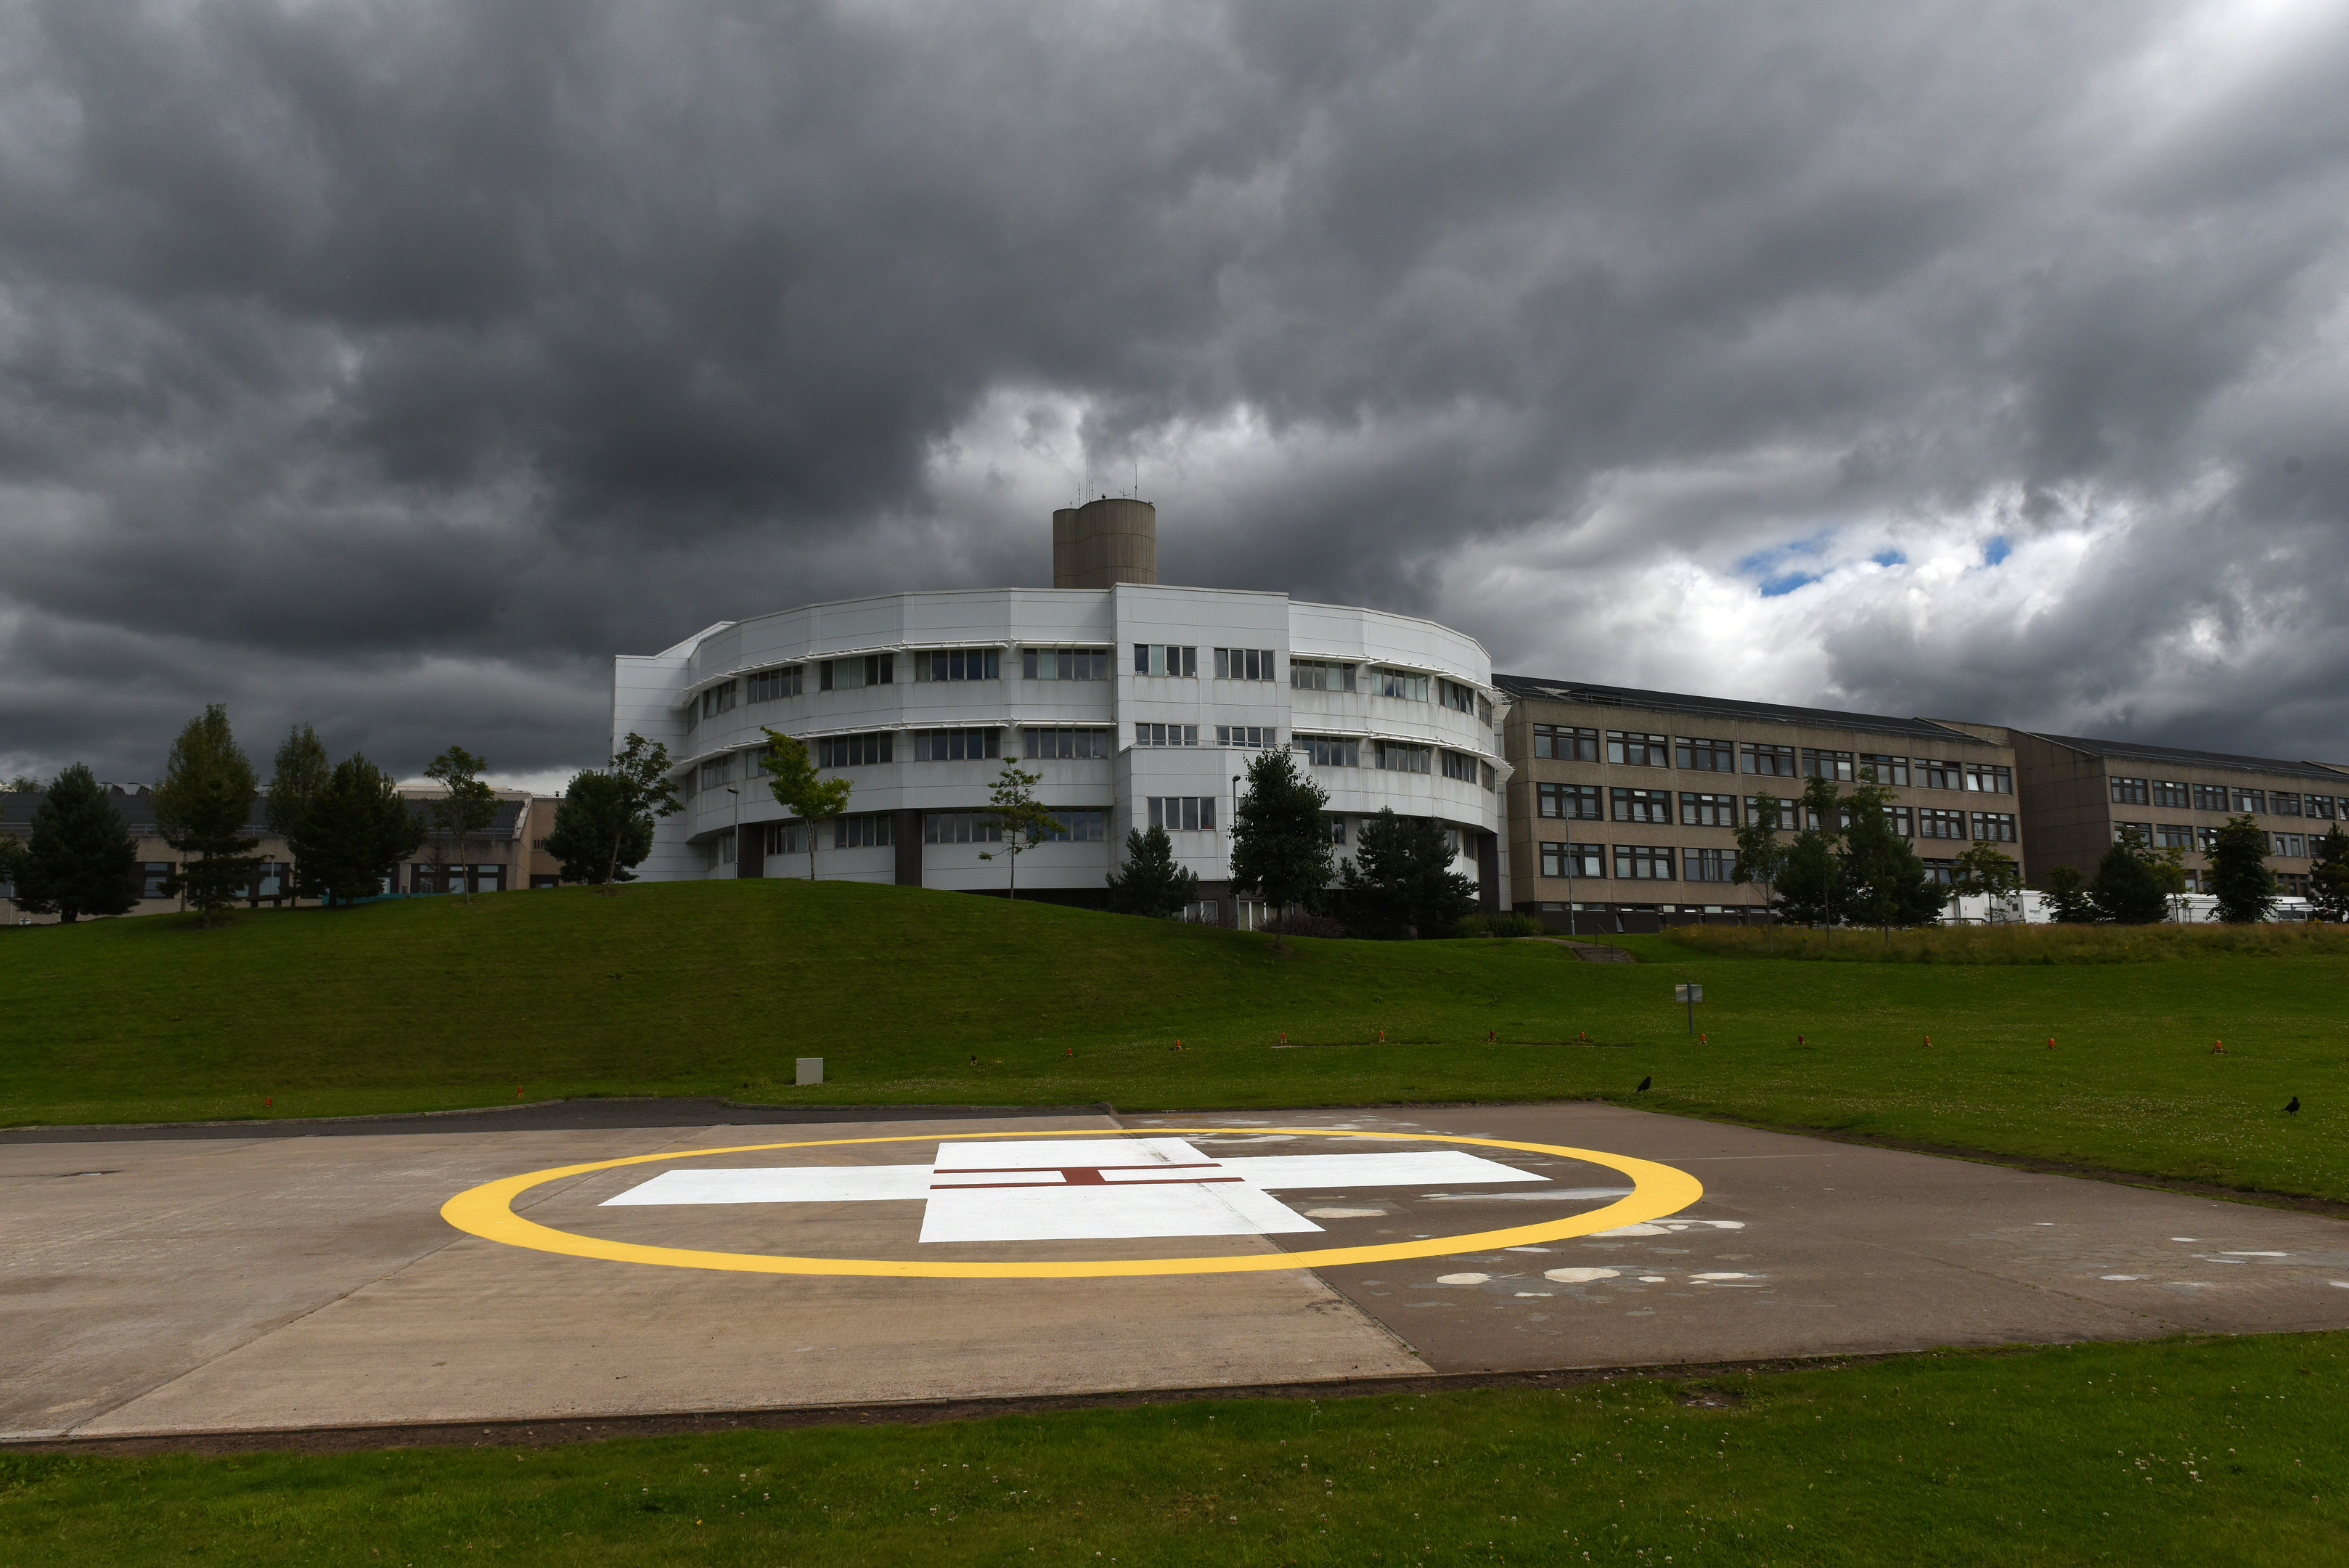 Ninewells in Dundee is one of the hospitals used to treat Fifers when services are not available in their helath board area.